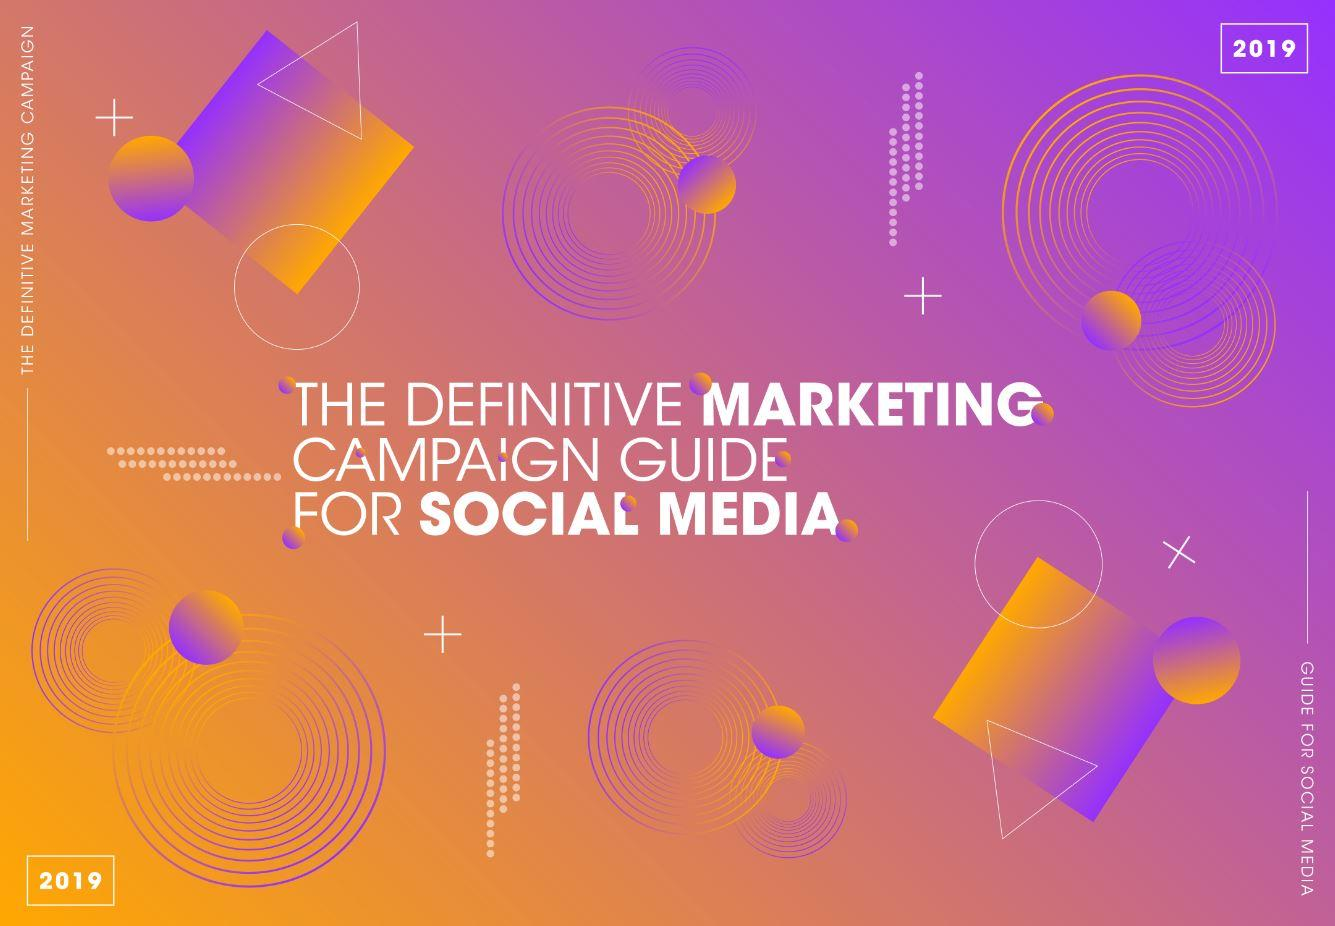 THE DEFINITIVE MARKETING CAMPAIGN GUIDE FOR SOCIAL MEDIA - News